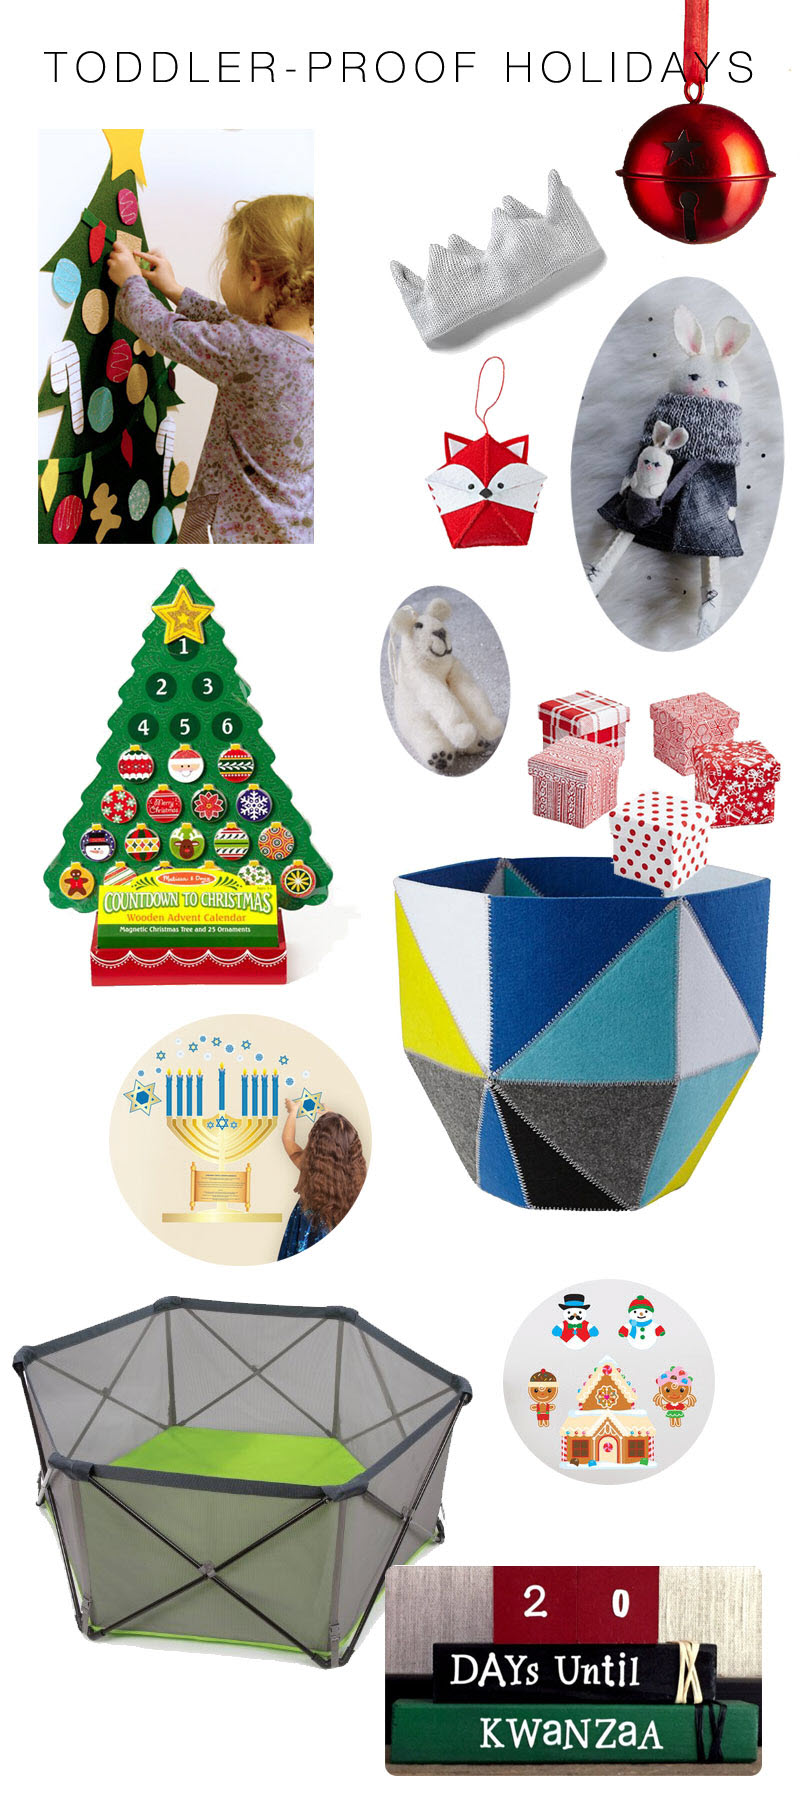 baby-proof-holiday-decorations